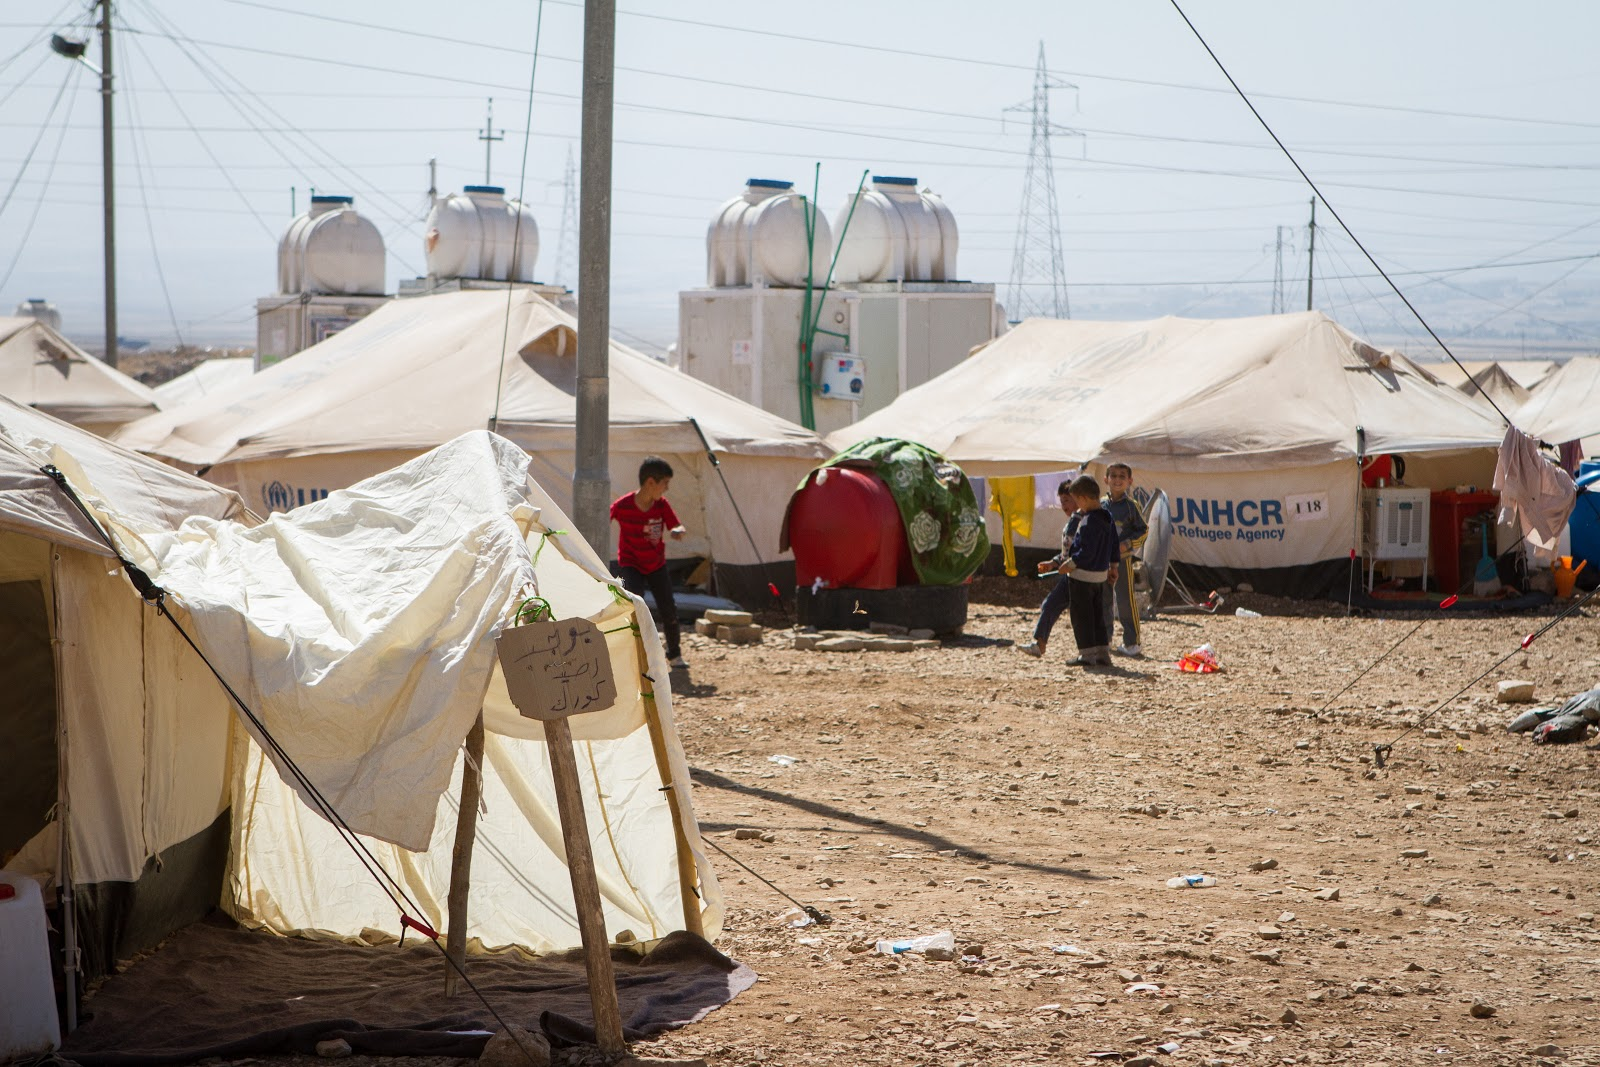 Crisis shelters for Syrian refugees at the transit camp